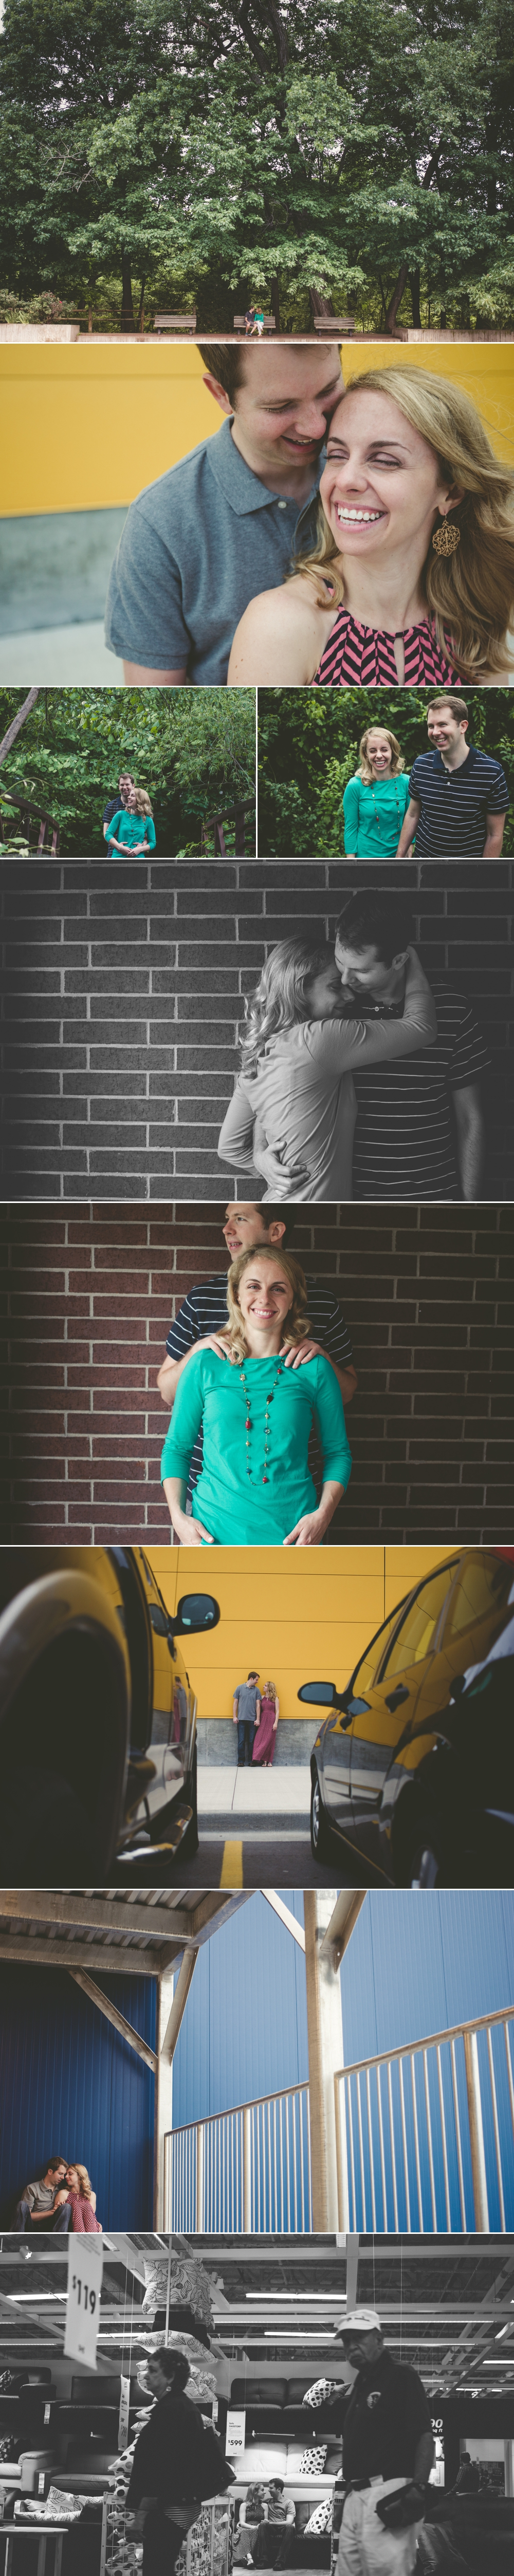 kansas_city_antioch_park_engagement_session_jason_domingues_photography_ikea_engaged_photographer_creative_best